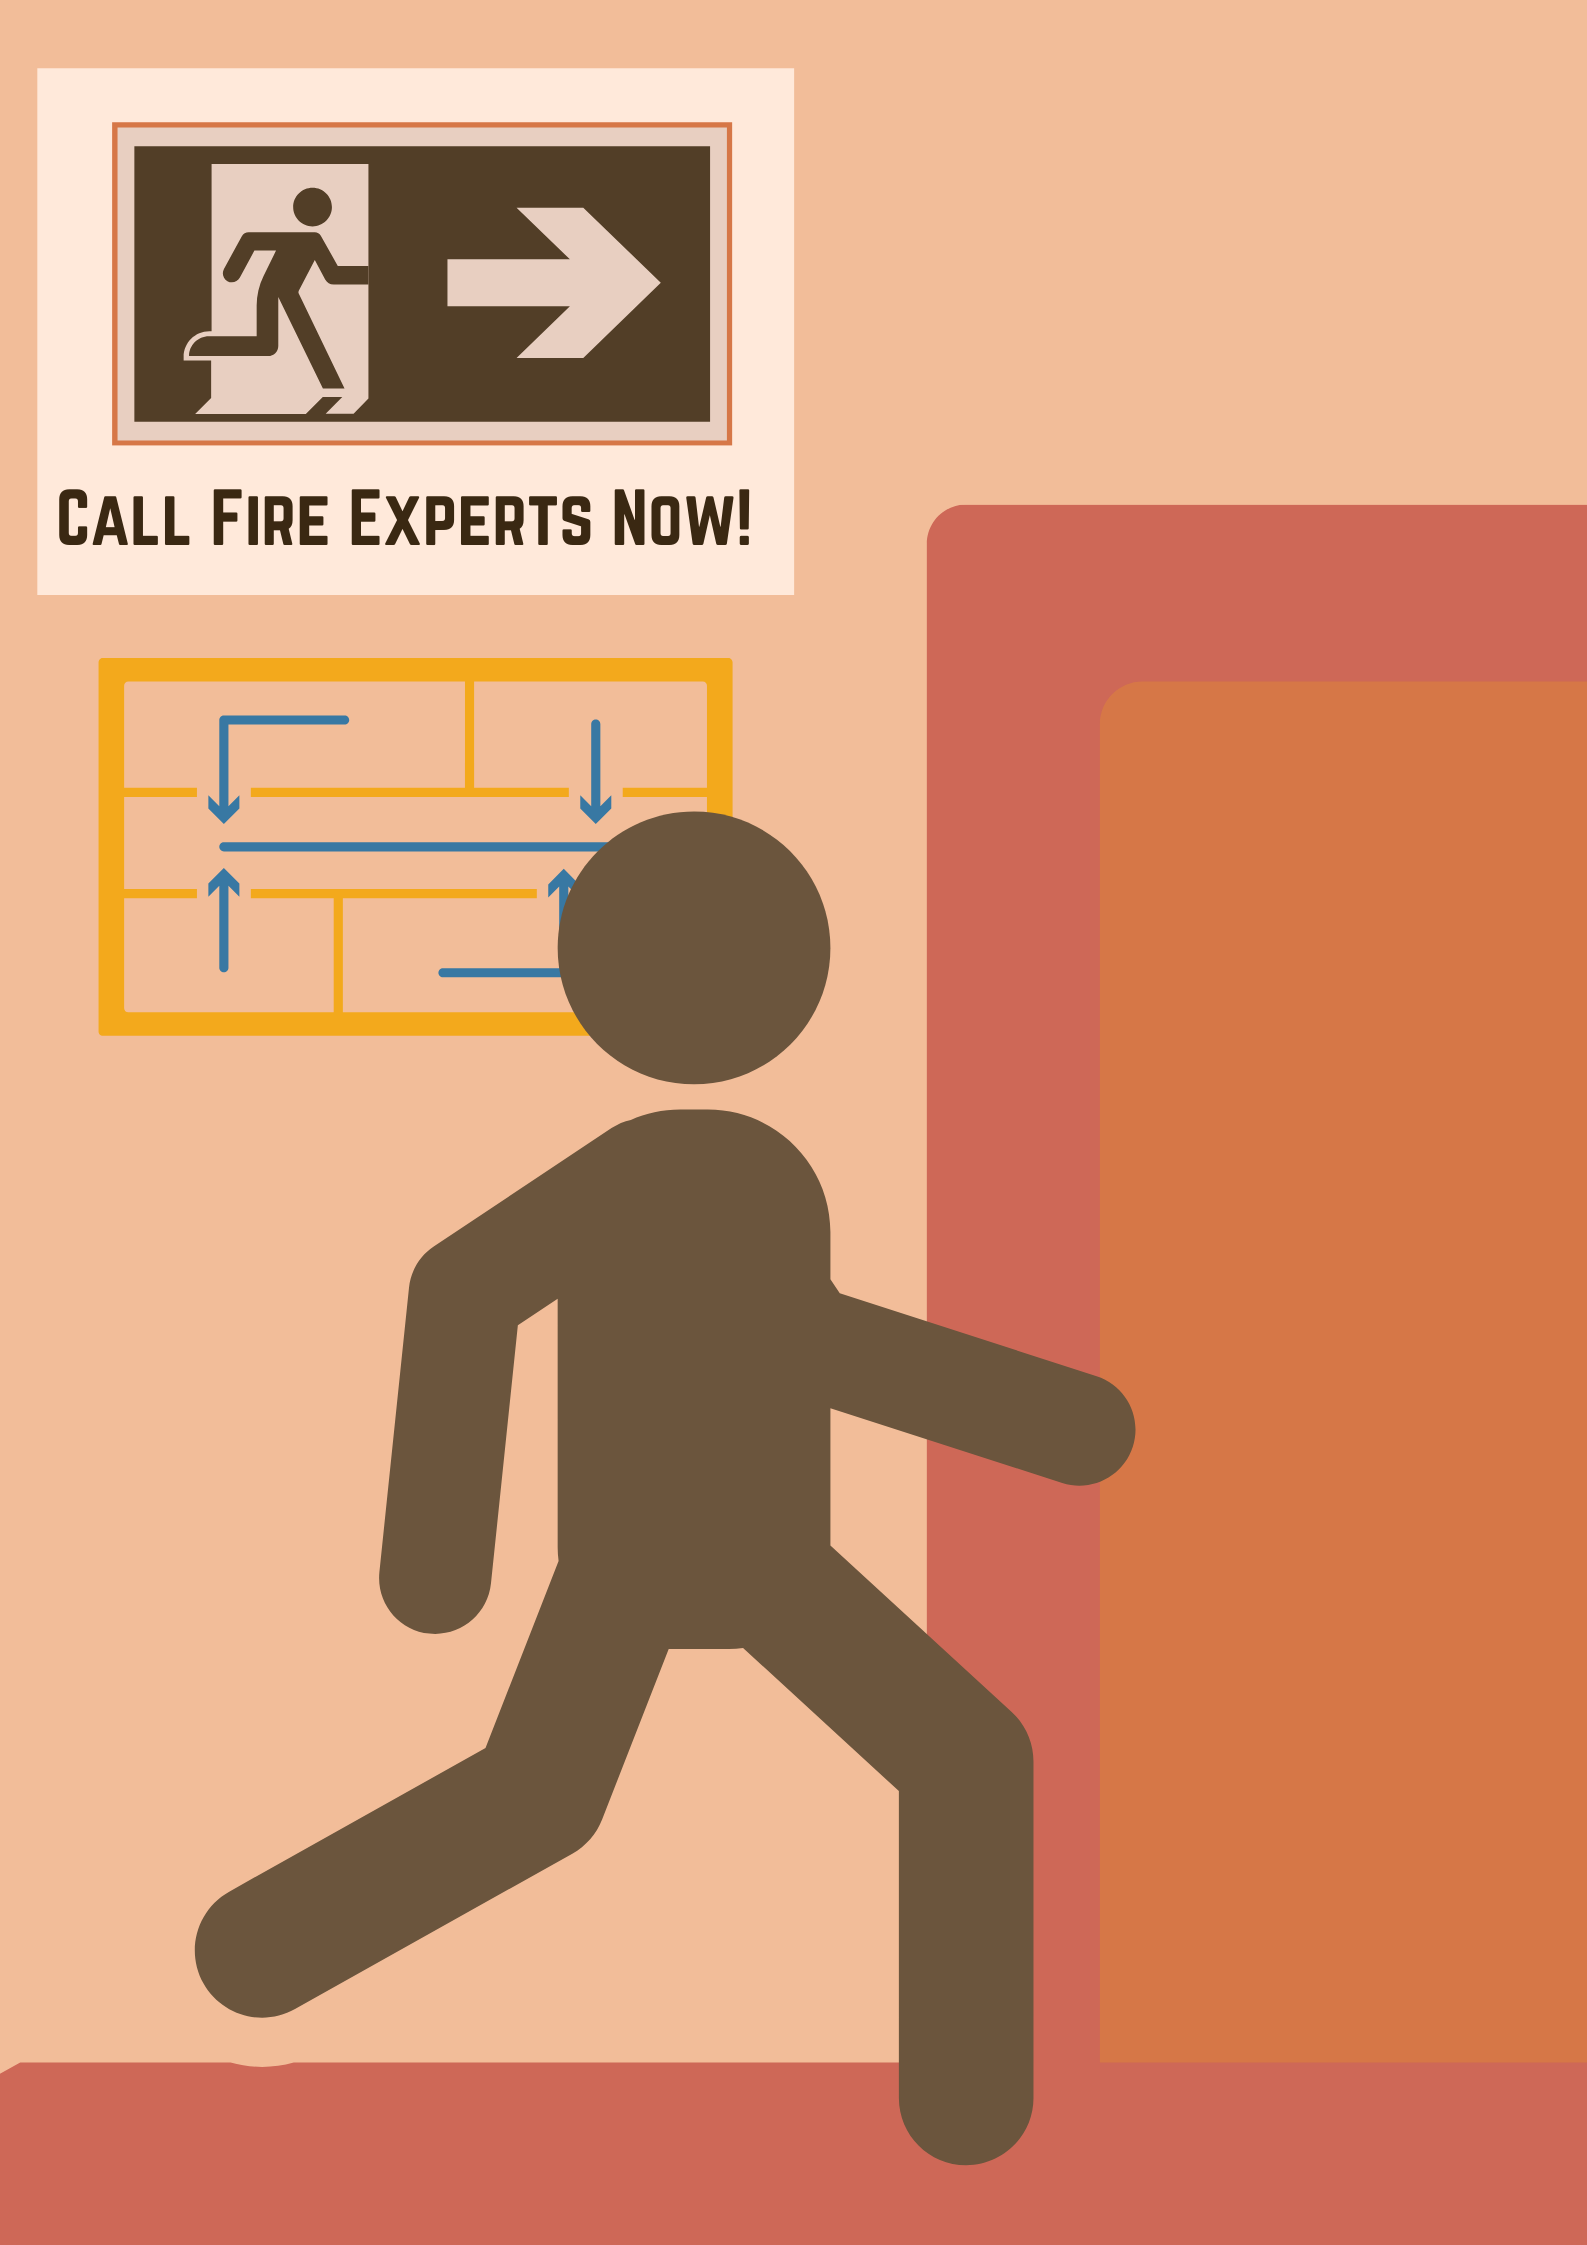 Call-Fire-Experts-Now